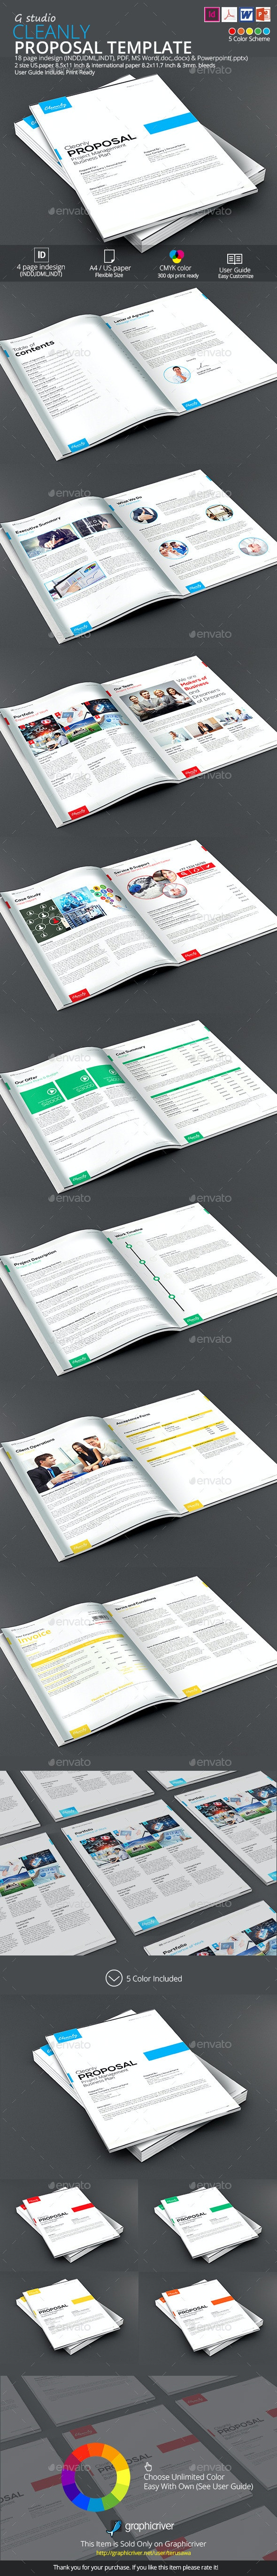 Cleanly Proposal Template - Proposals & Invoices Stationery